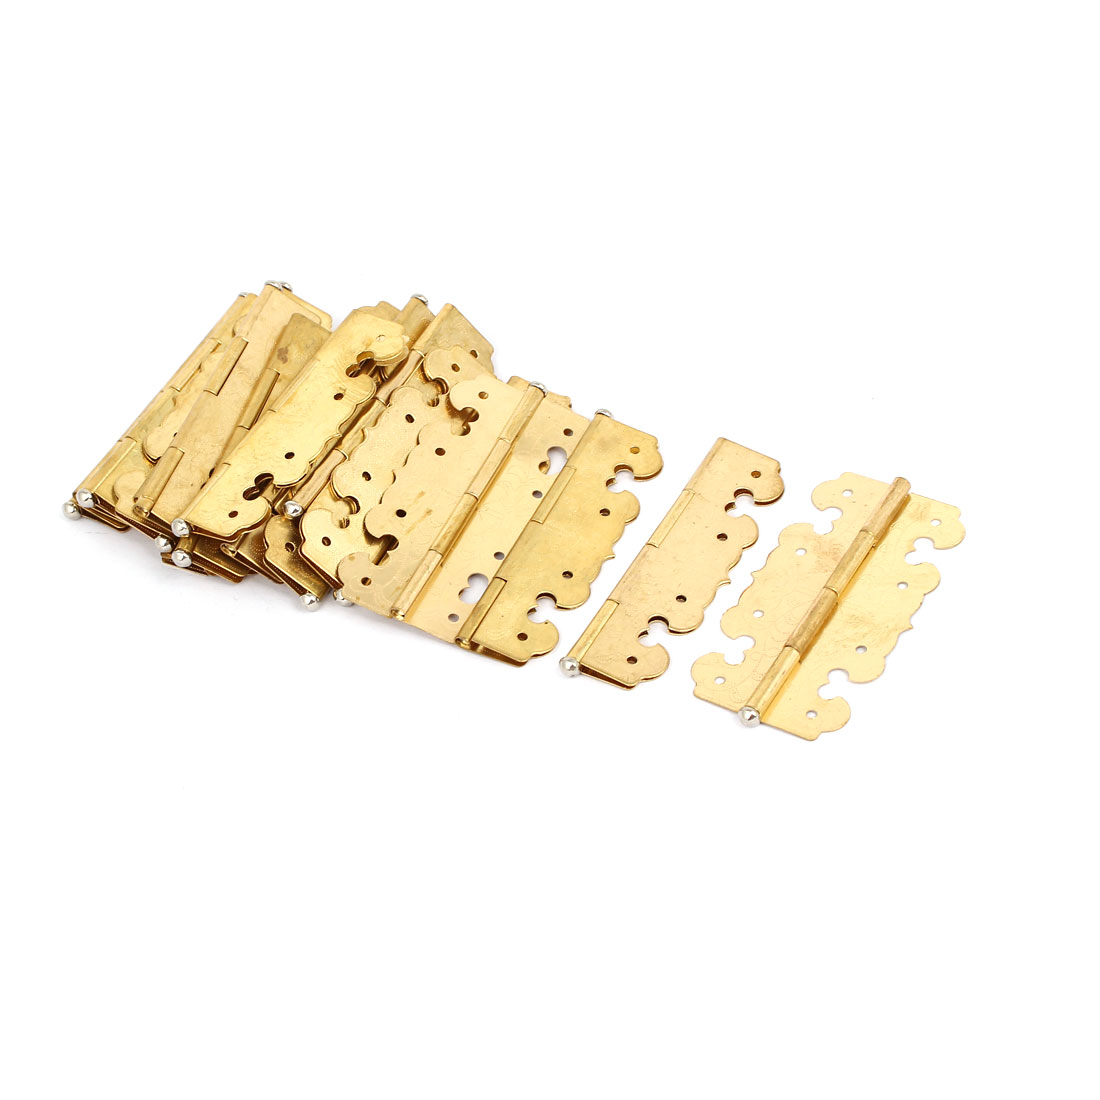 "Closet Cabinet Door Metal Rotatable Butt Hinges Gold Tone 2.7"" Length 20PCS"